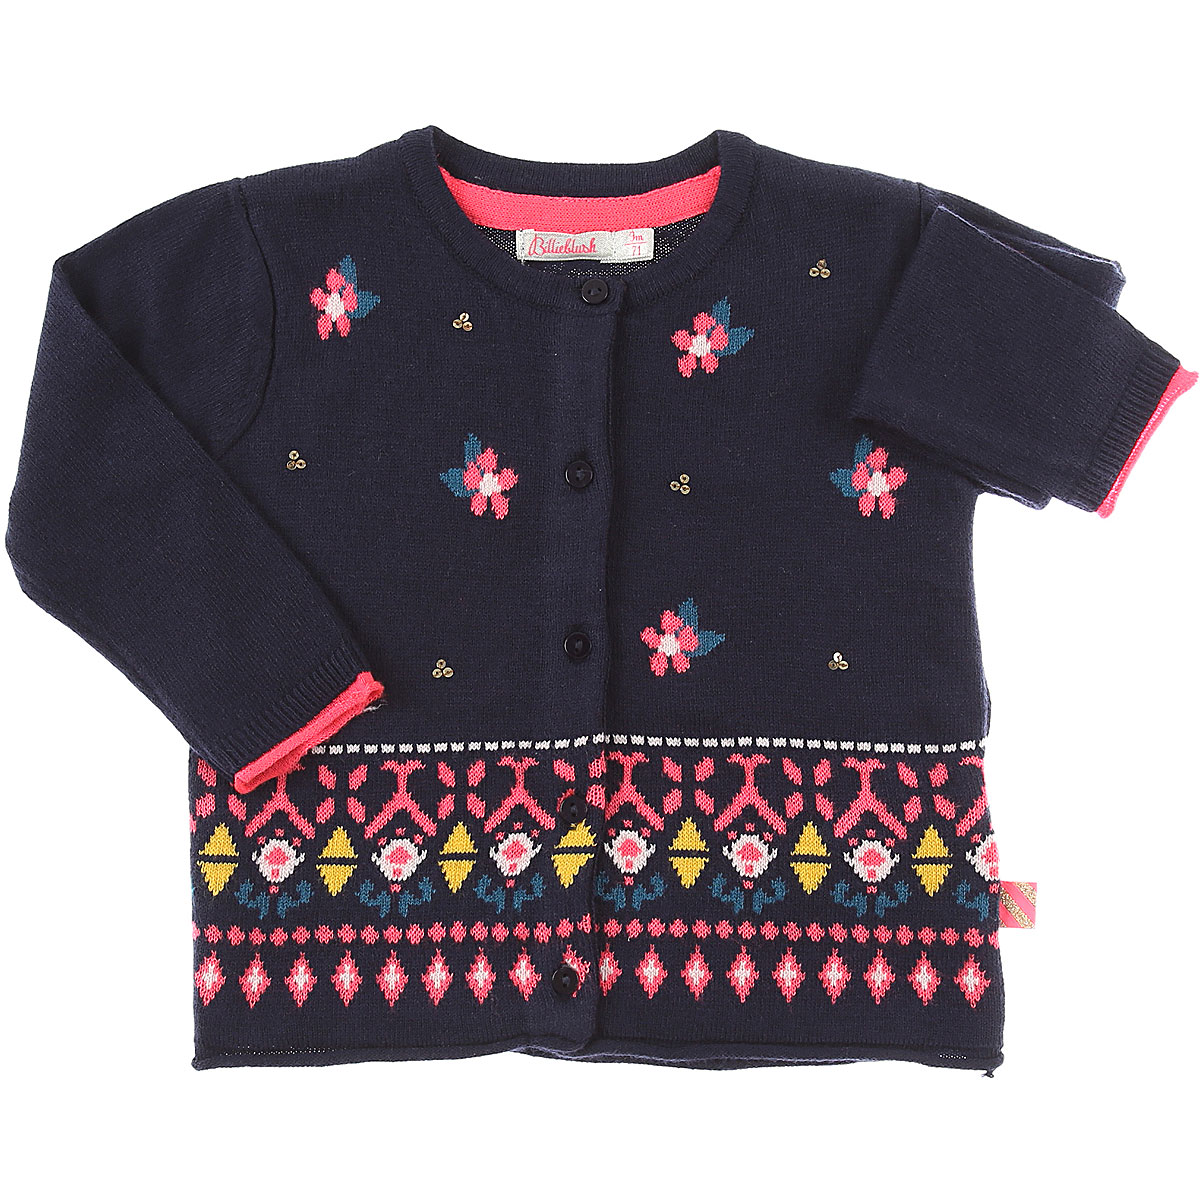 Image of Billieblush Baby Sweaters for Girls, Blue, polyamide, 2017, 12M 18M 2Y 3Y 6M 9M